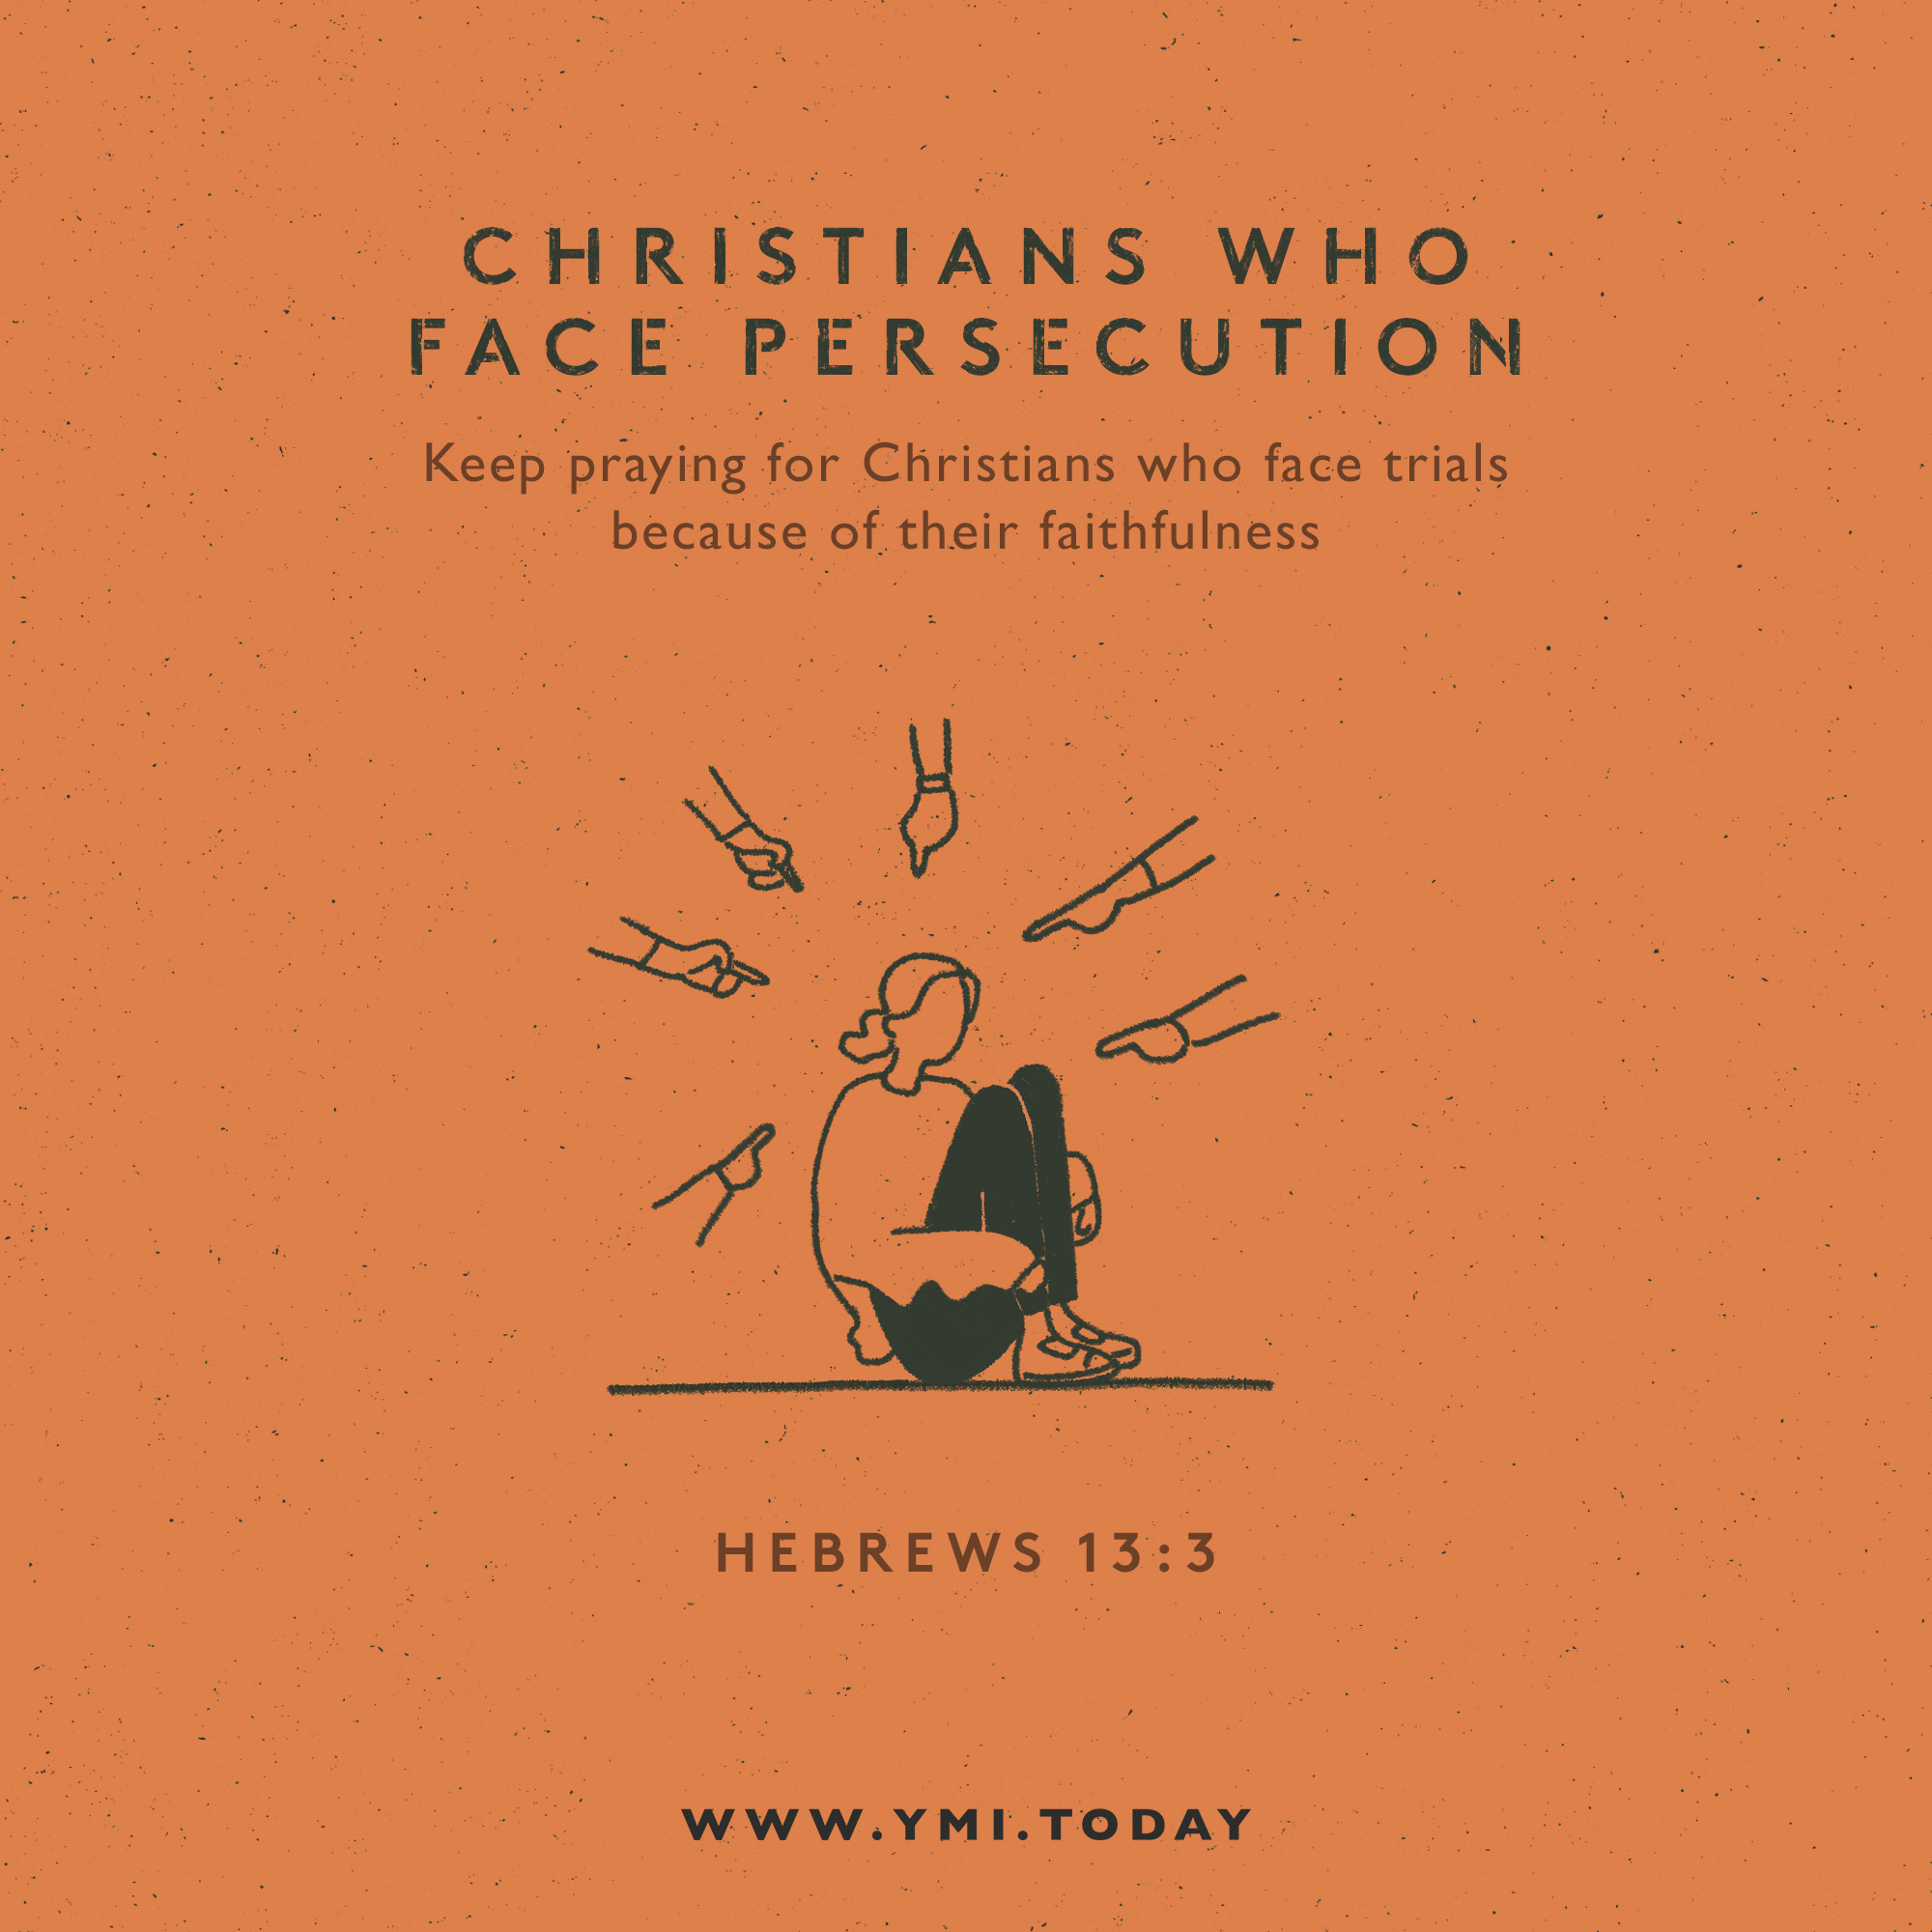 Christians who face persecution. Keep praying for Christians who face trials because of their faithfulness. Hebrews 13:3.